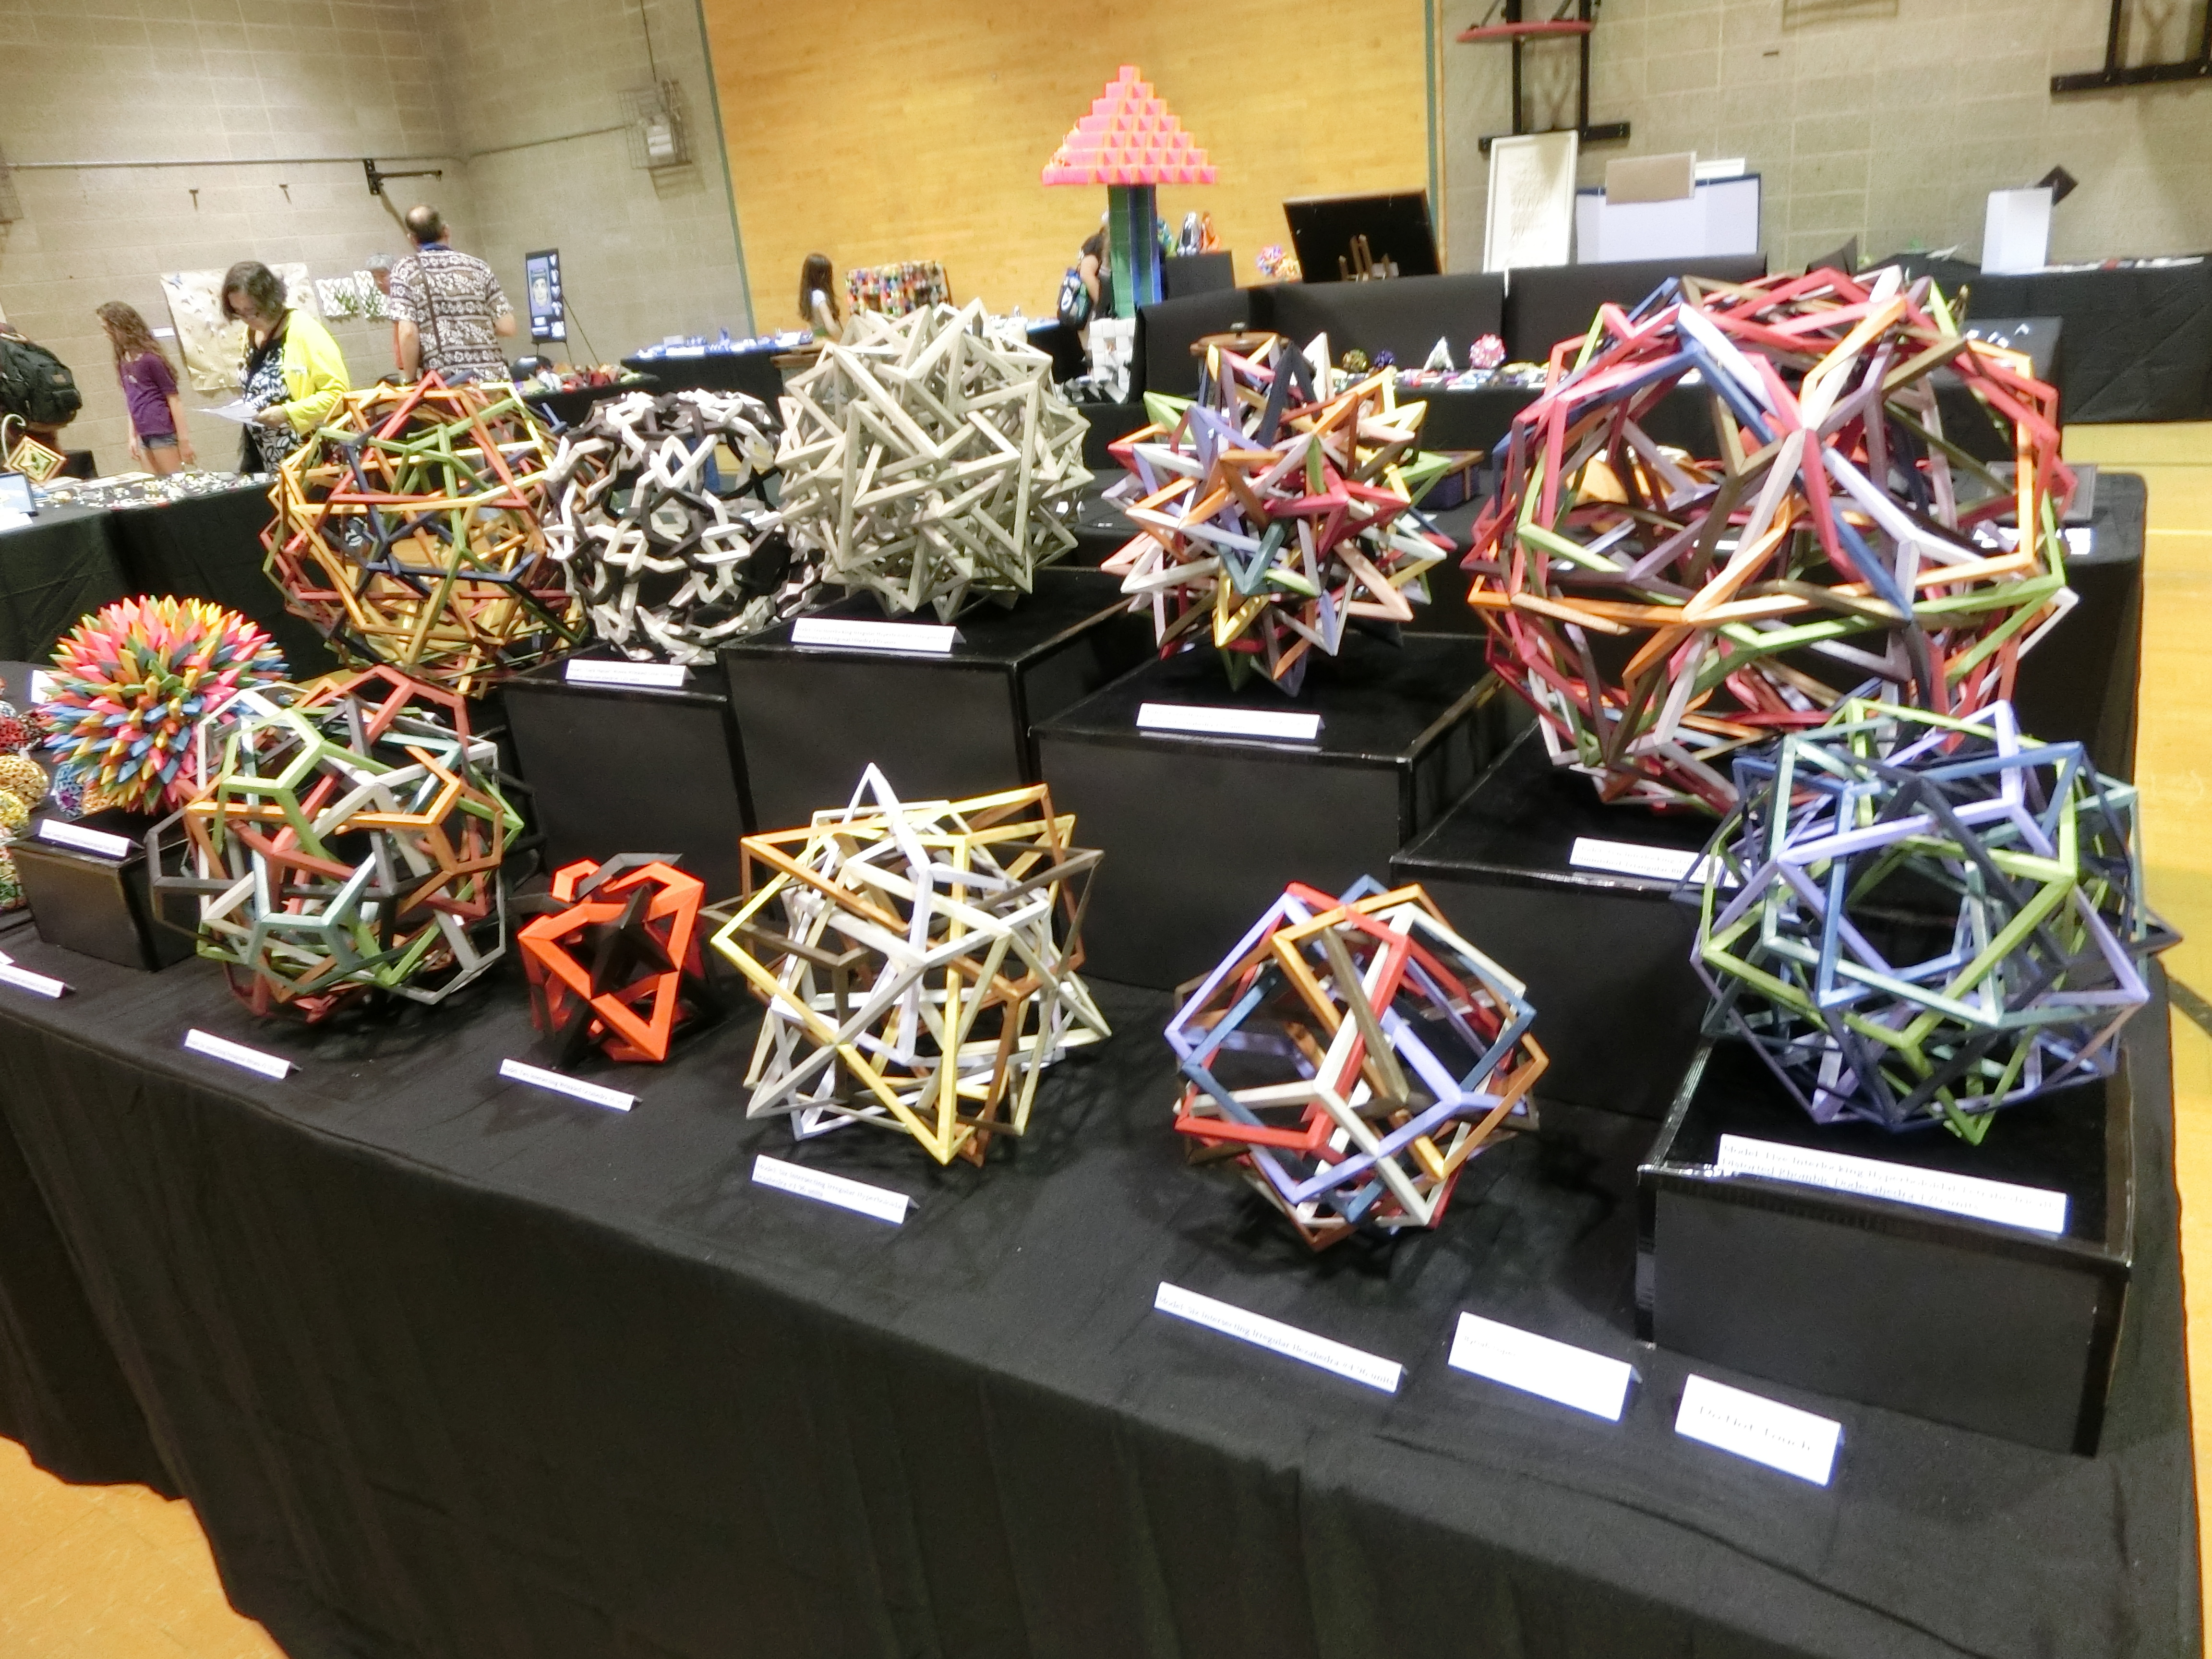 Modular Origami Models Probably The Easiest But Require A Decent Level Of Patience And Precision